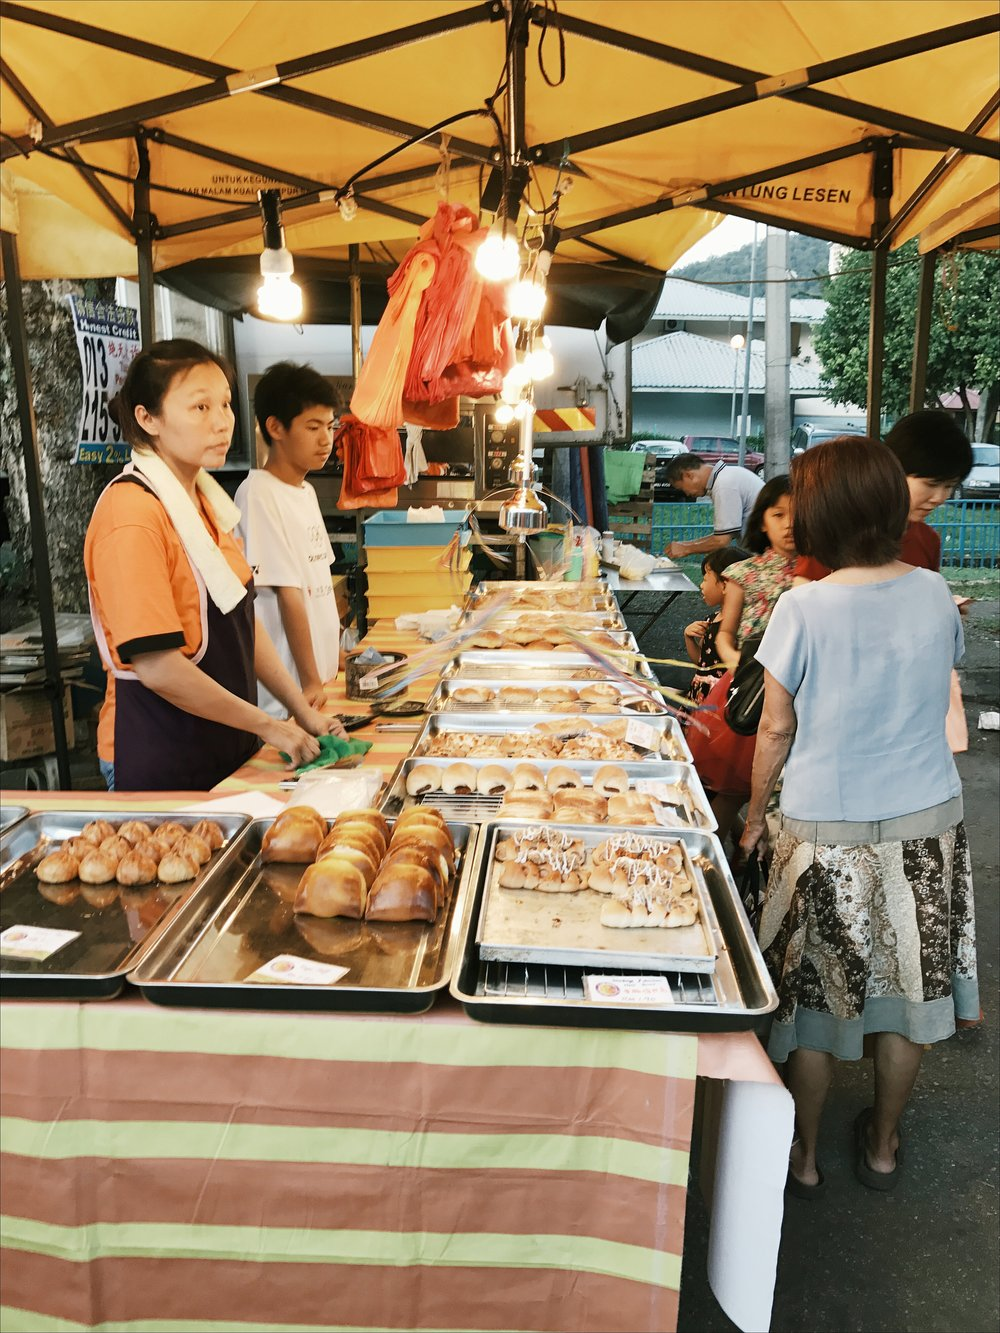 there's always a stall selling freshly baked buns in any night markets here. this one is no exception - everyone looked really tired though.